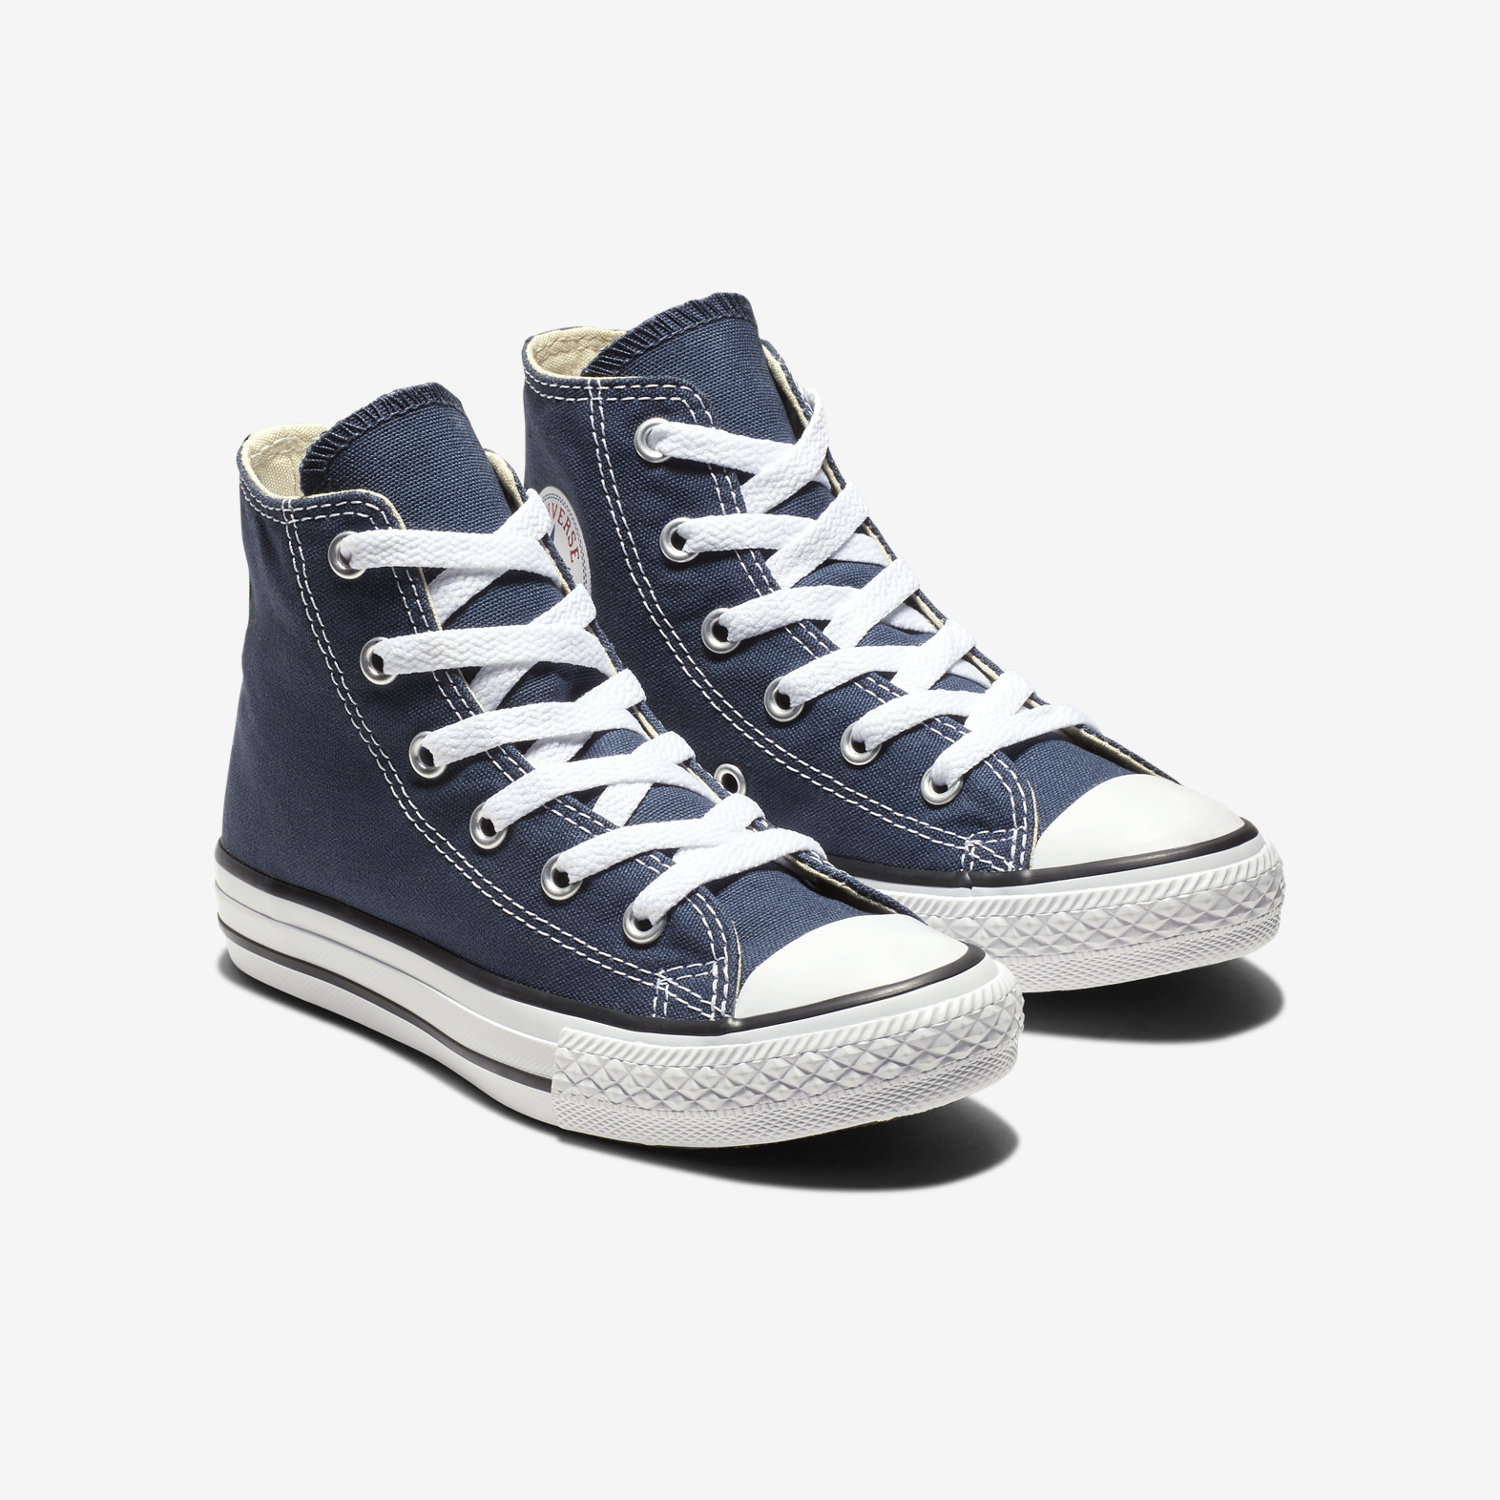 converse all star for girls high top